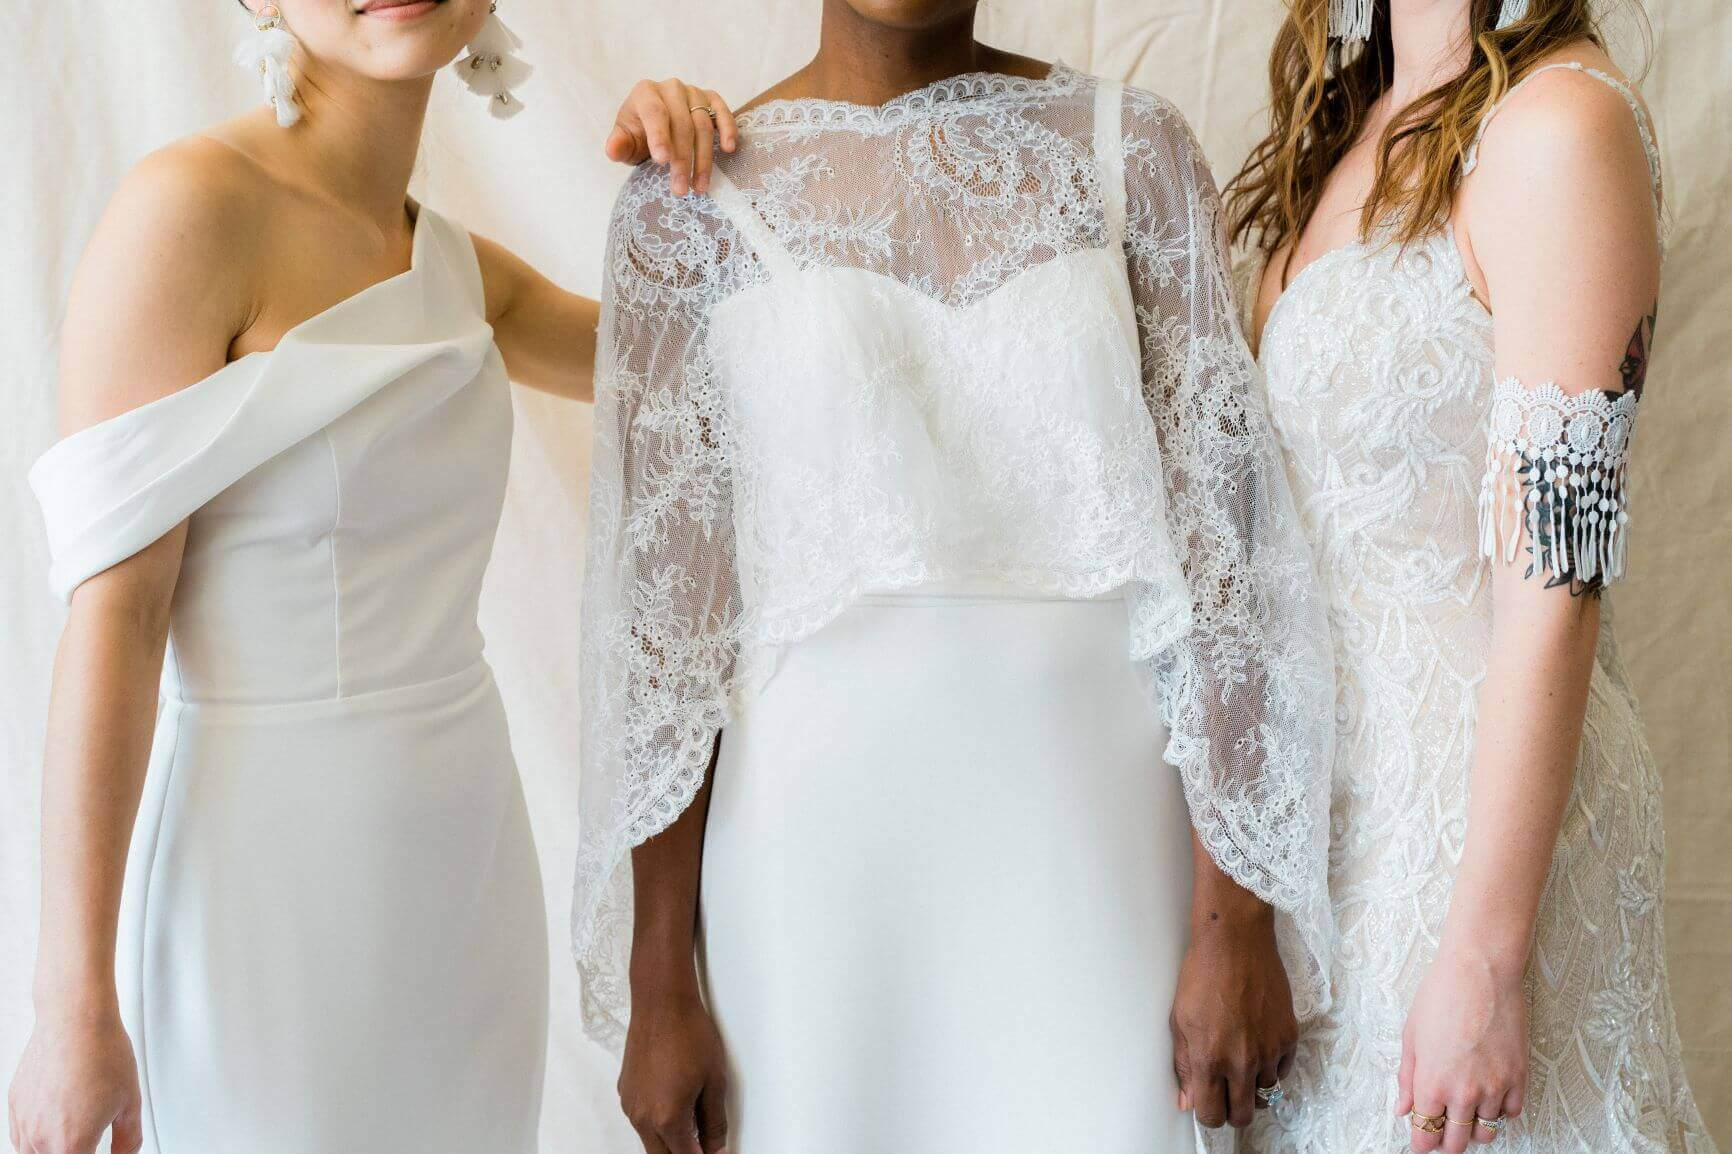 All About Wedding Dress Silhouettes: Part I